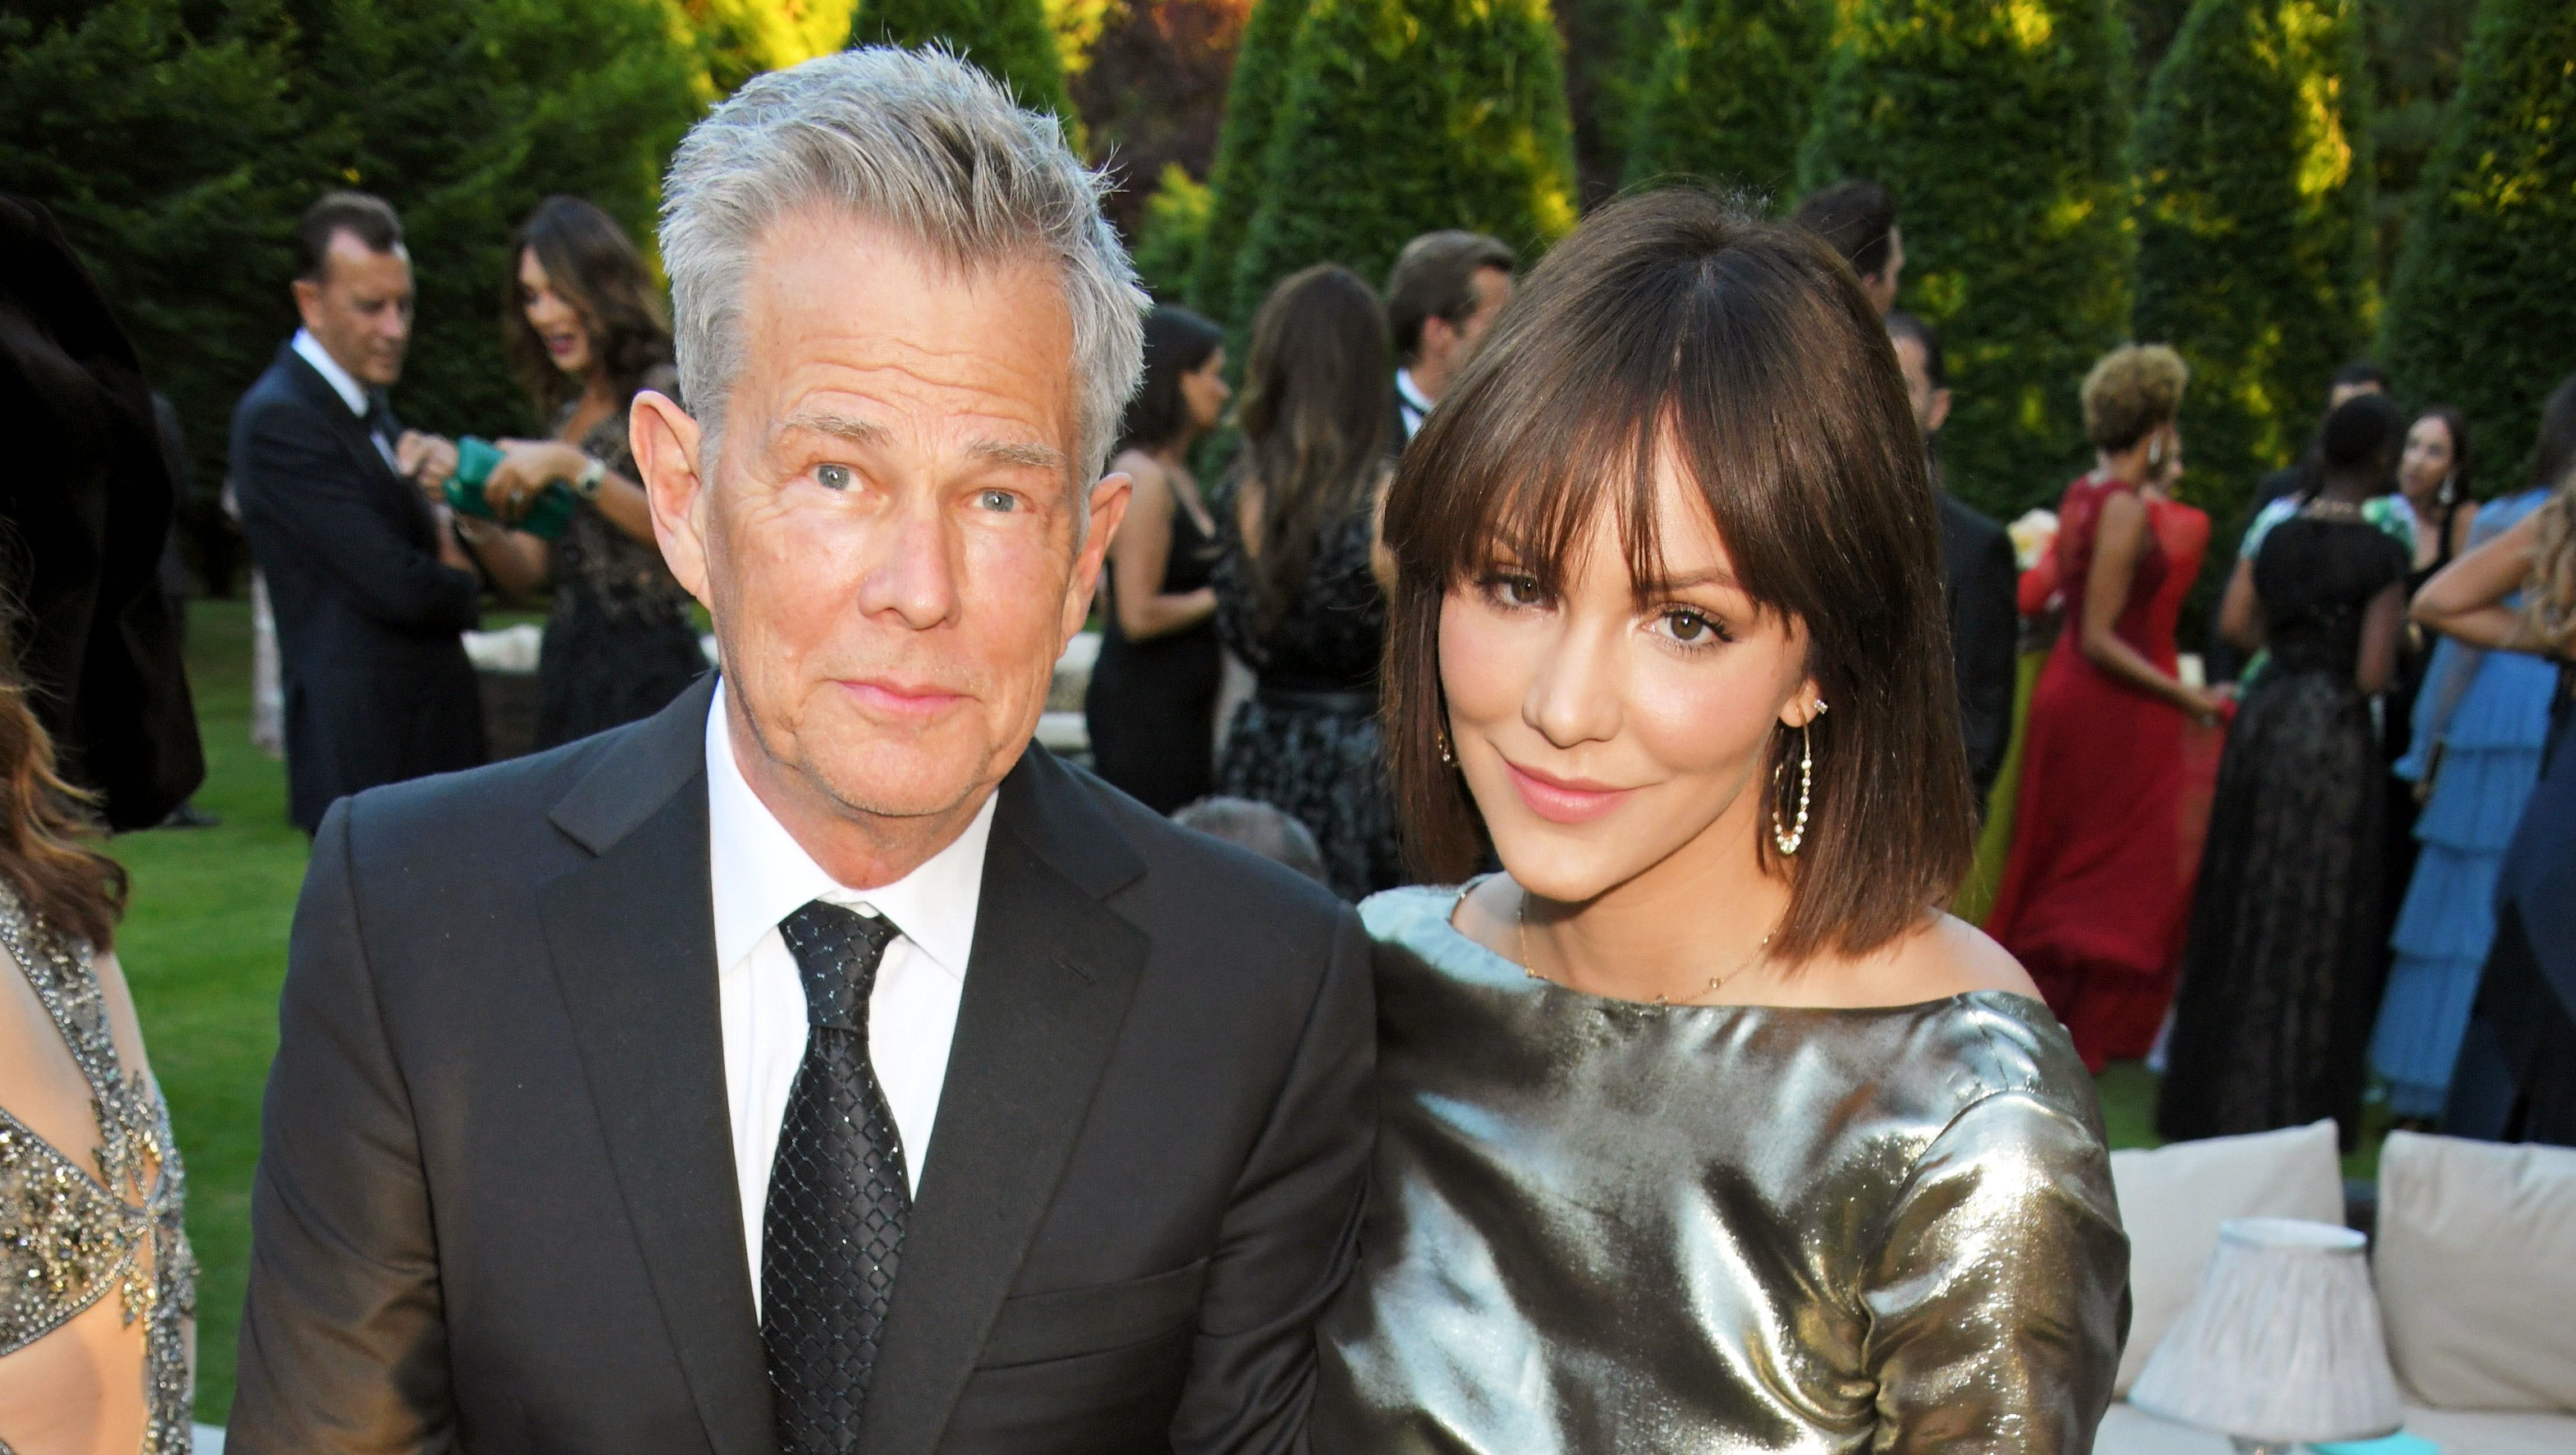 Katharine McPhee gushes over David Foster